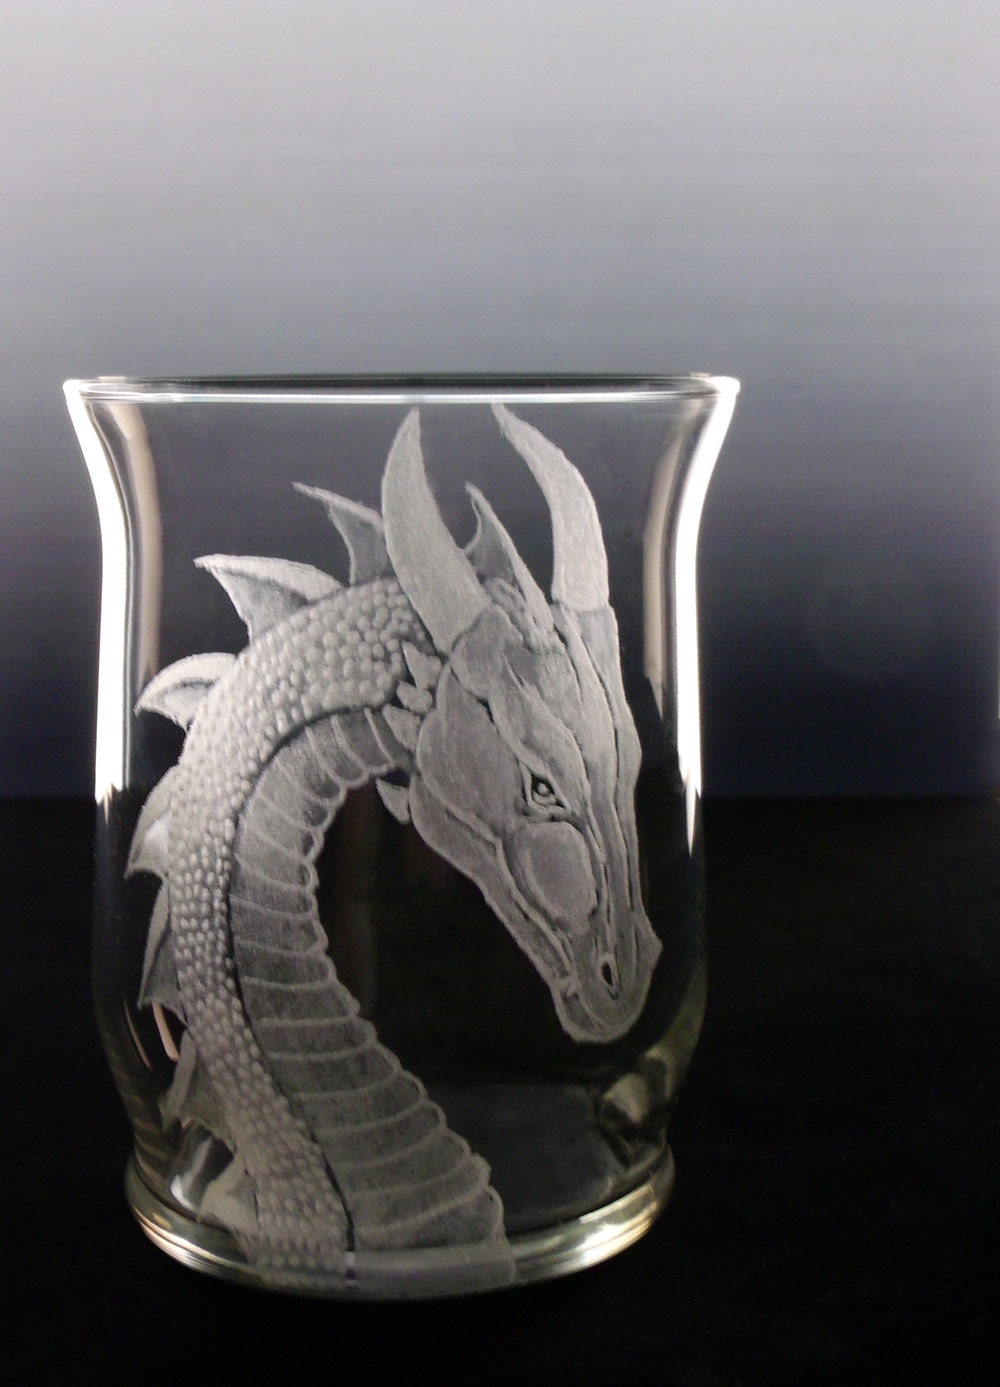 Home decor Dragon votive candle holder engraved clear glass